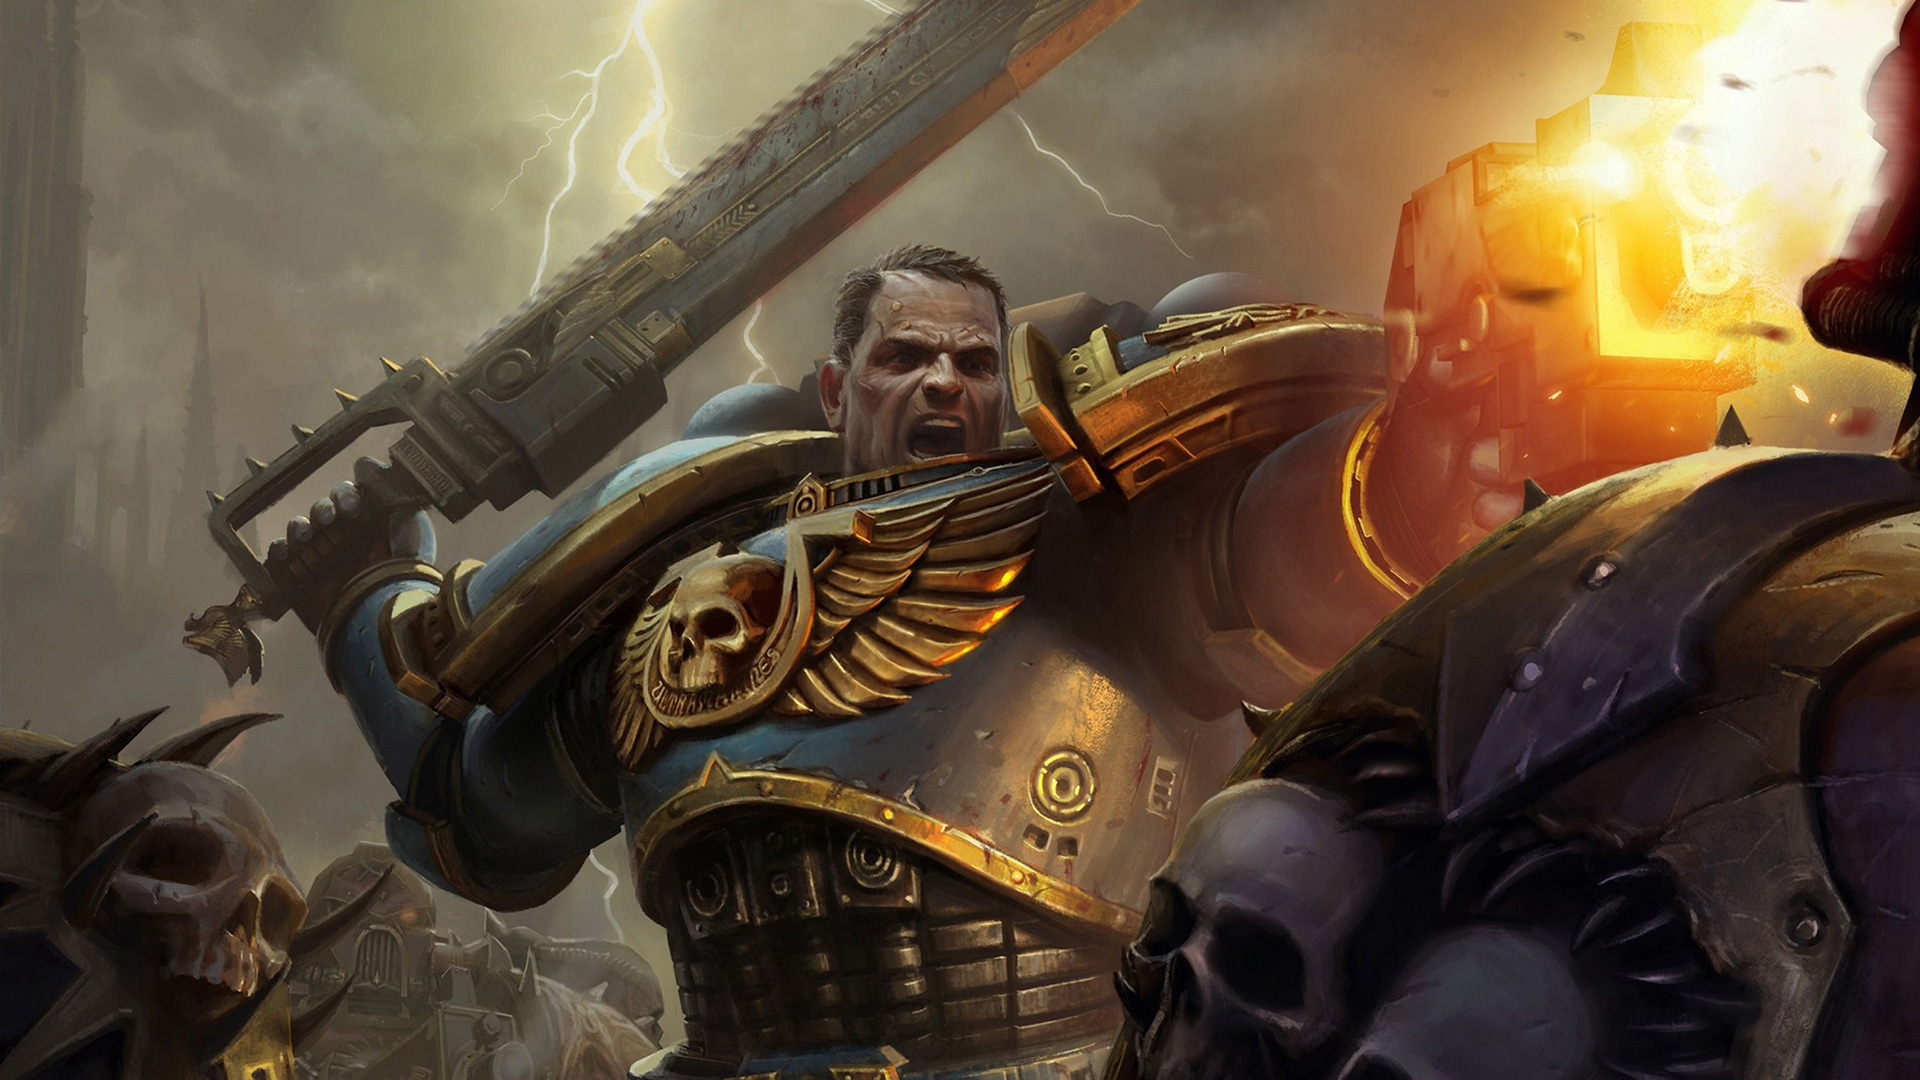 warhammer 40k space marine wallpaper 1 | wallpapersbq